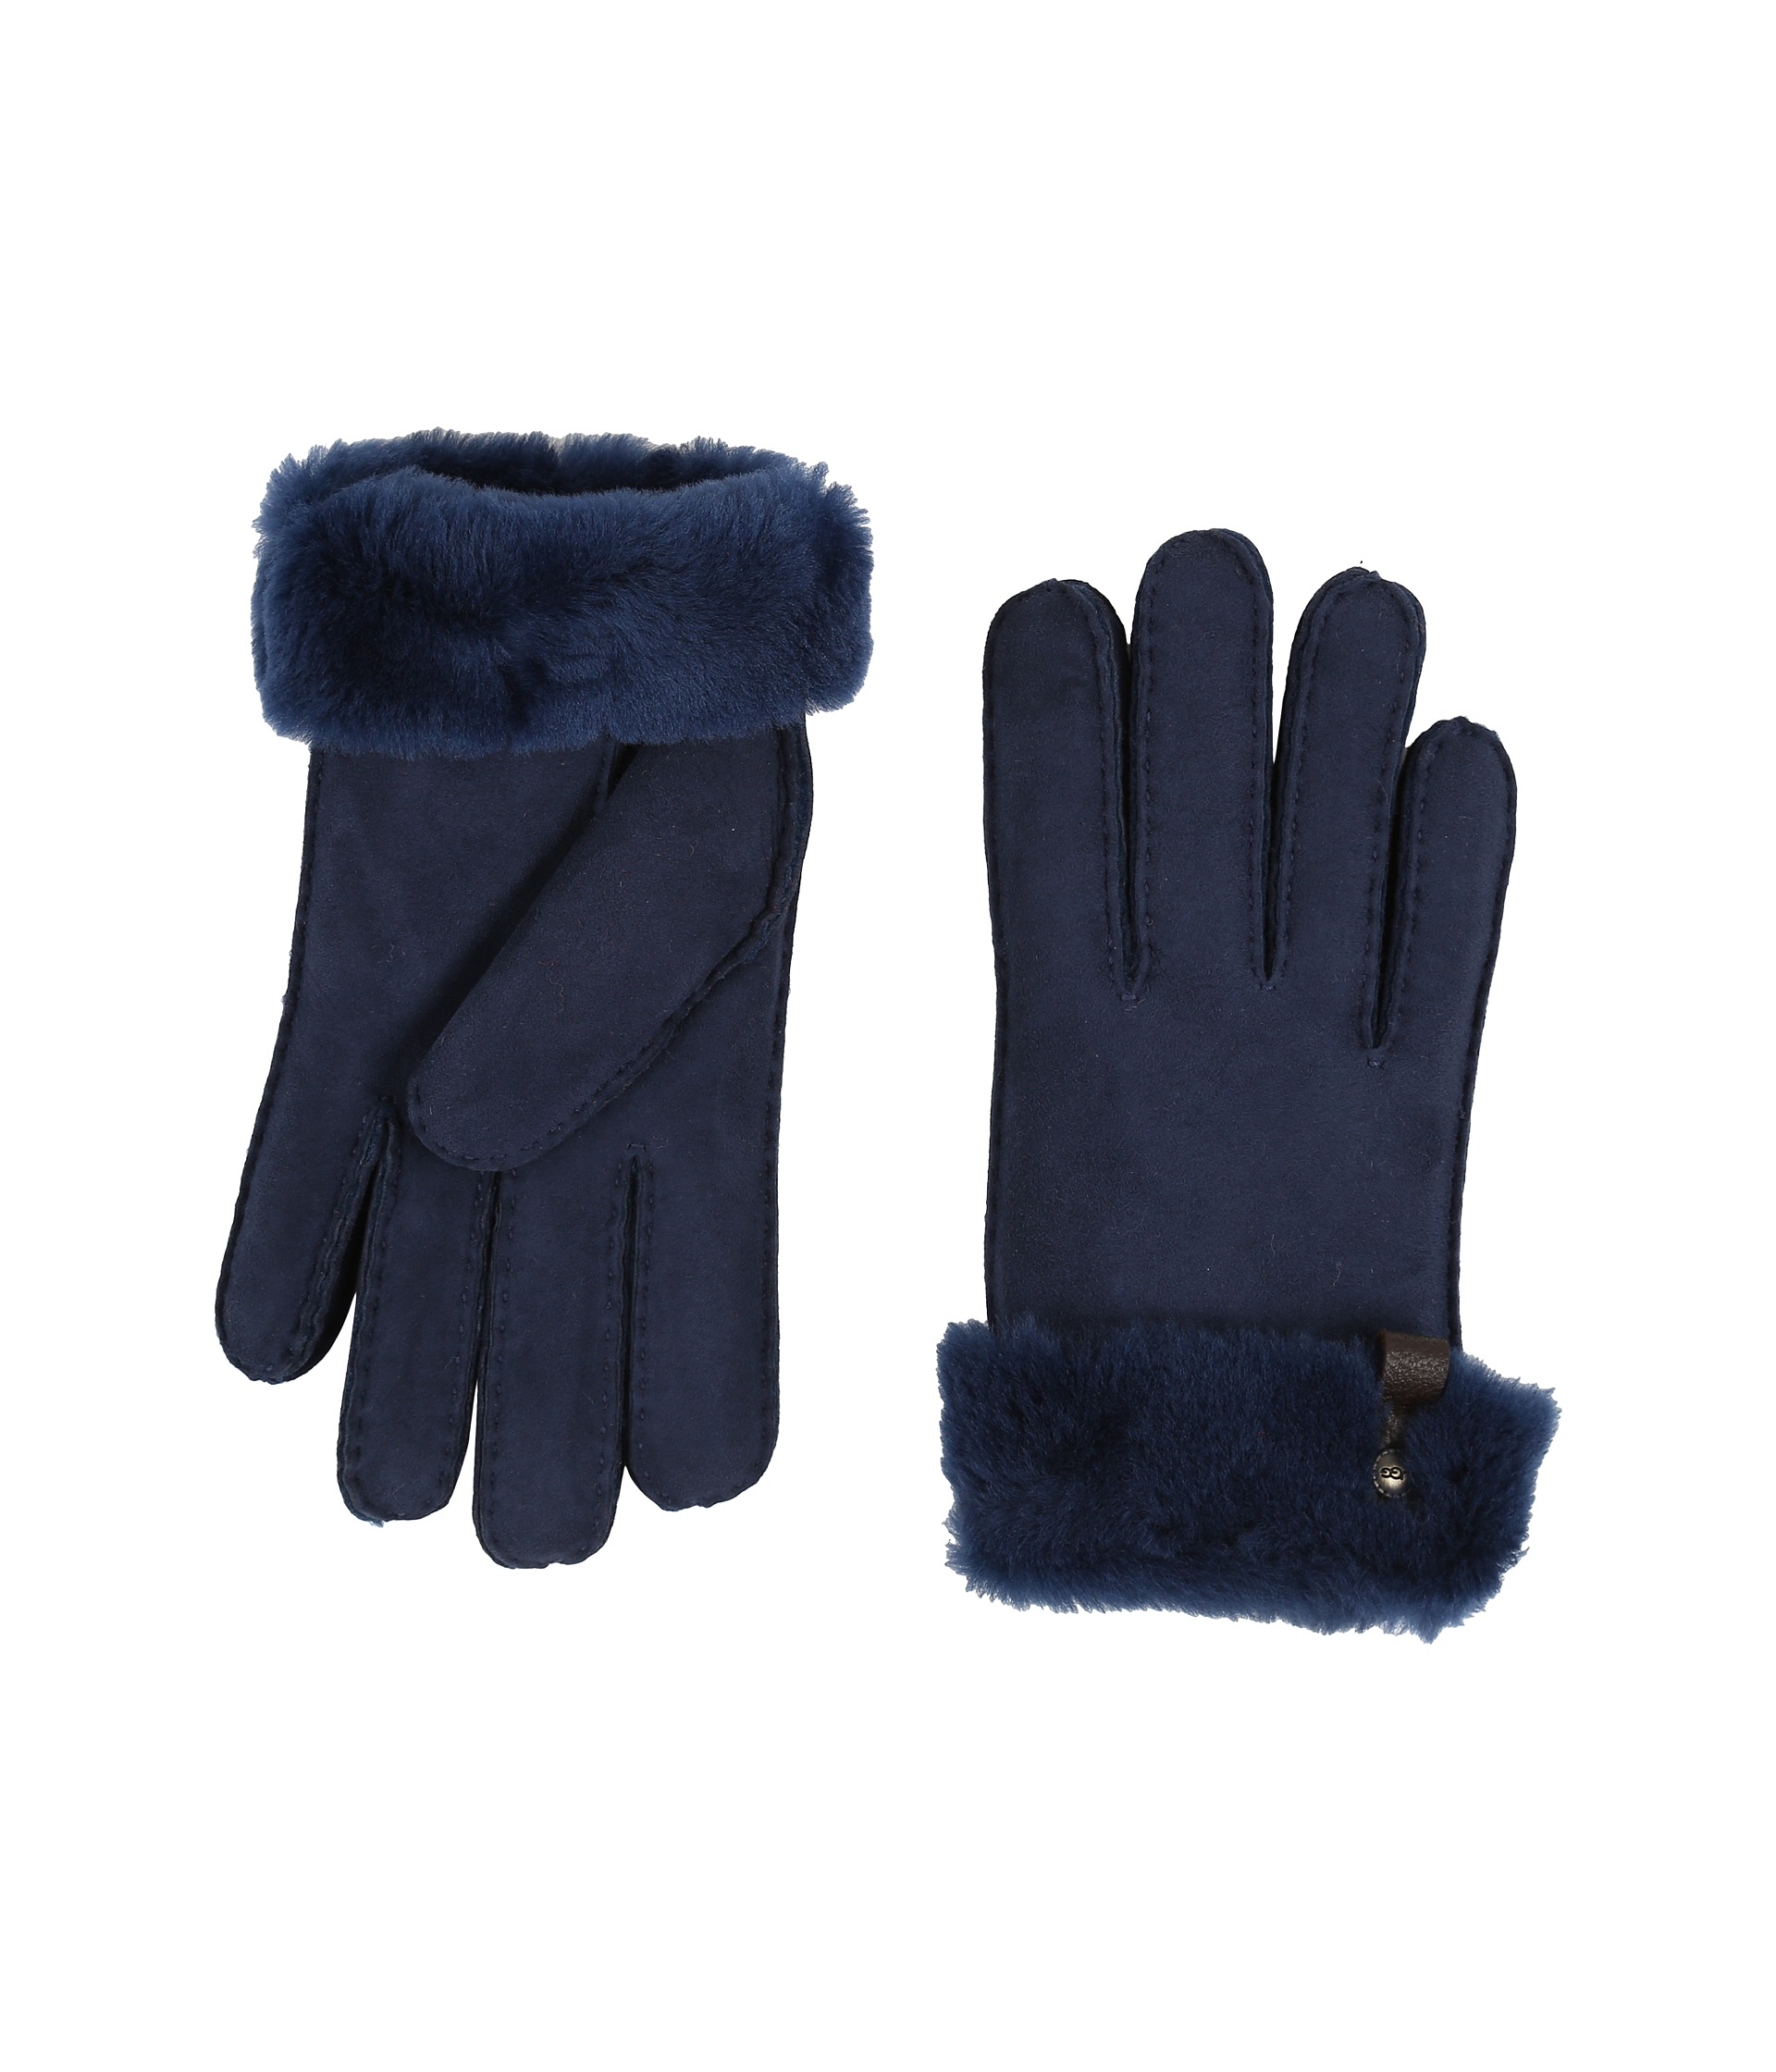 ugg gloves reviews